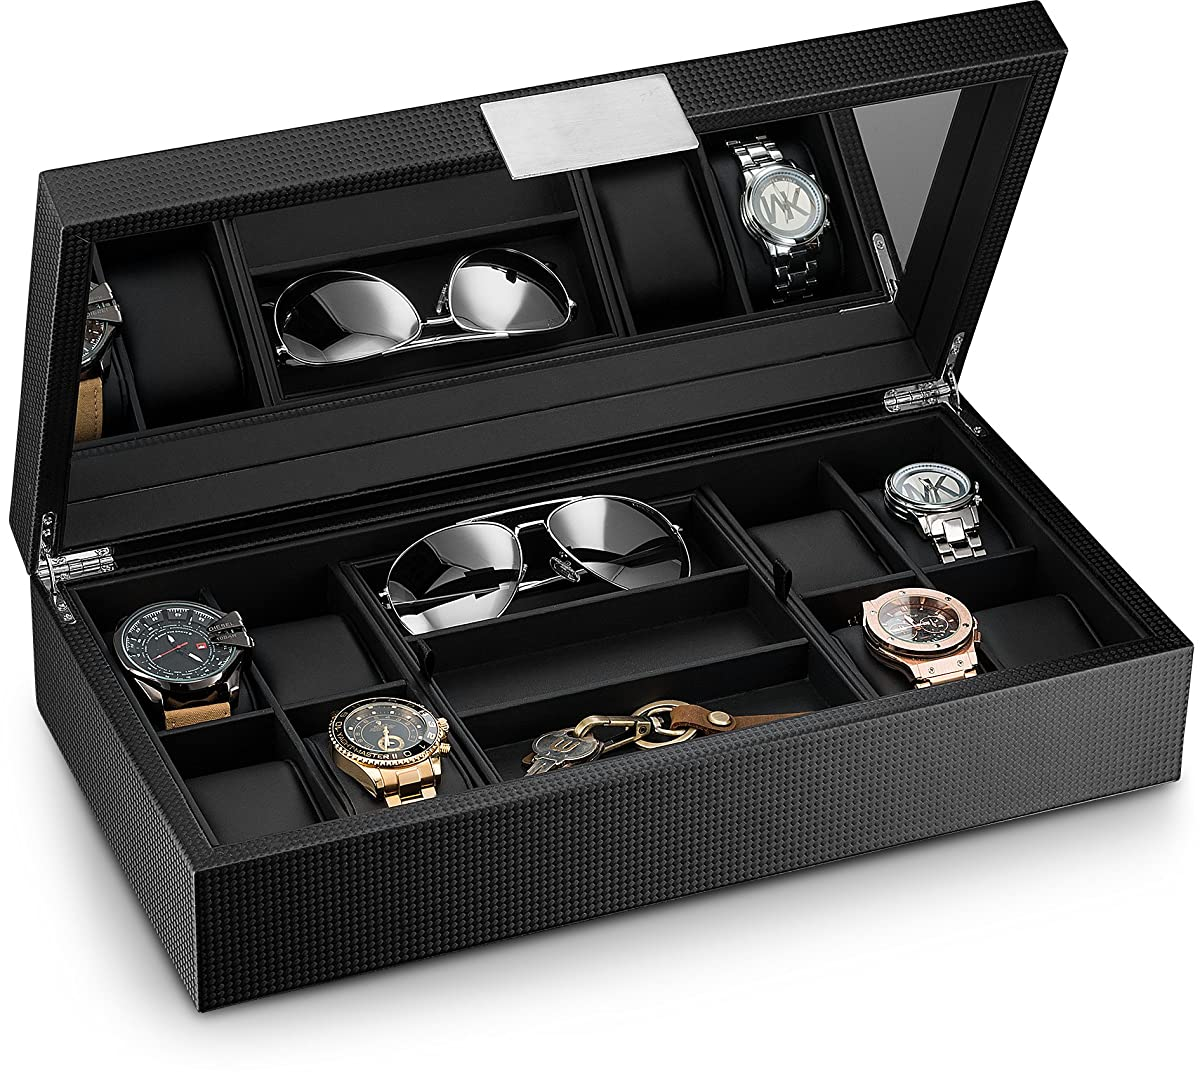 Glenor Co Watch and Sunglasses Box with Valet Tray for Men -14 Slot Luxury Display Case Organizer, Black Carbon Fiber Design for Mens Jewelry Watches, Mens Storage Holder w Large Mirror, Metal Buckle